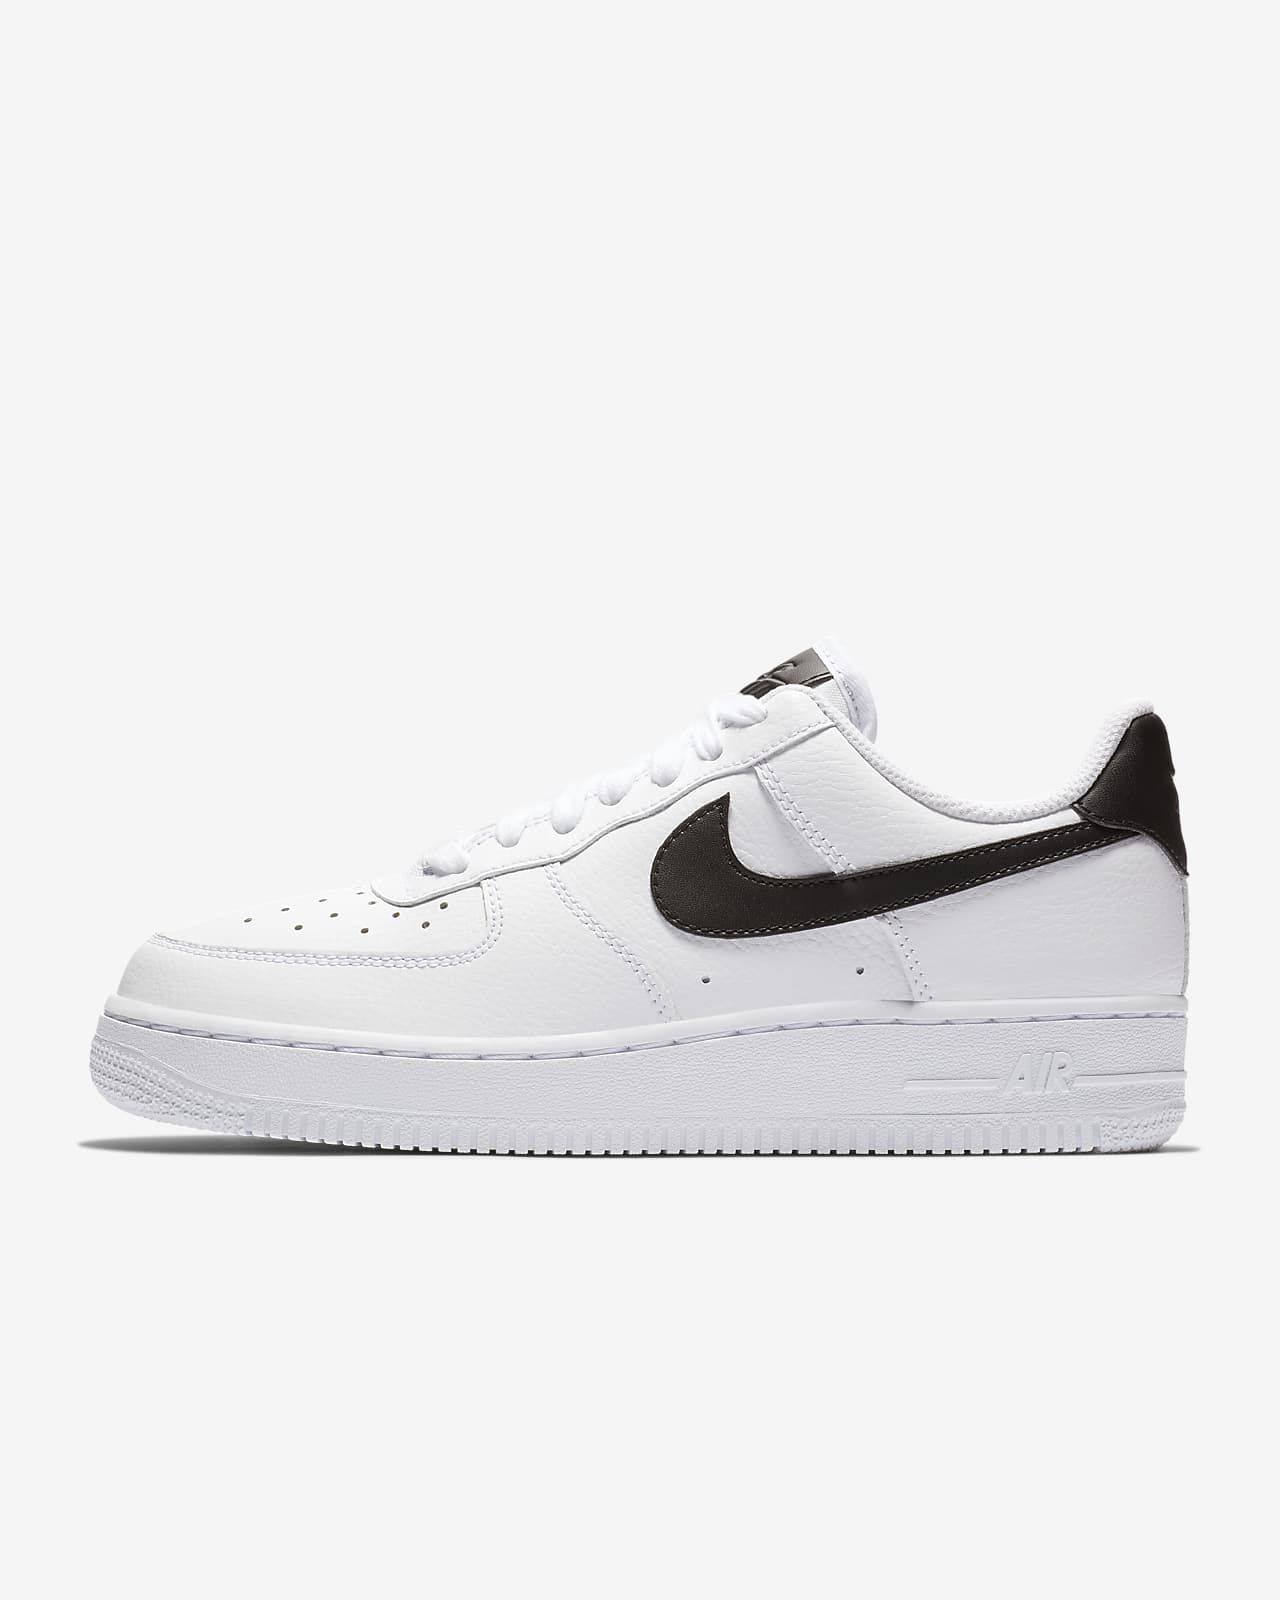 Vintage Nike Air Force 1 US 9 (wmns) EU 40.5 – Double